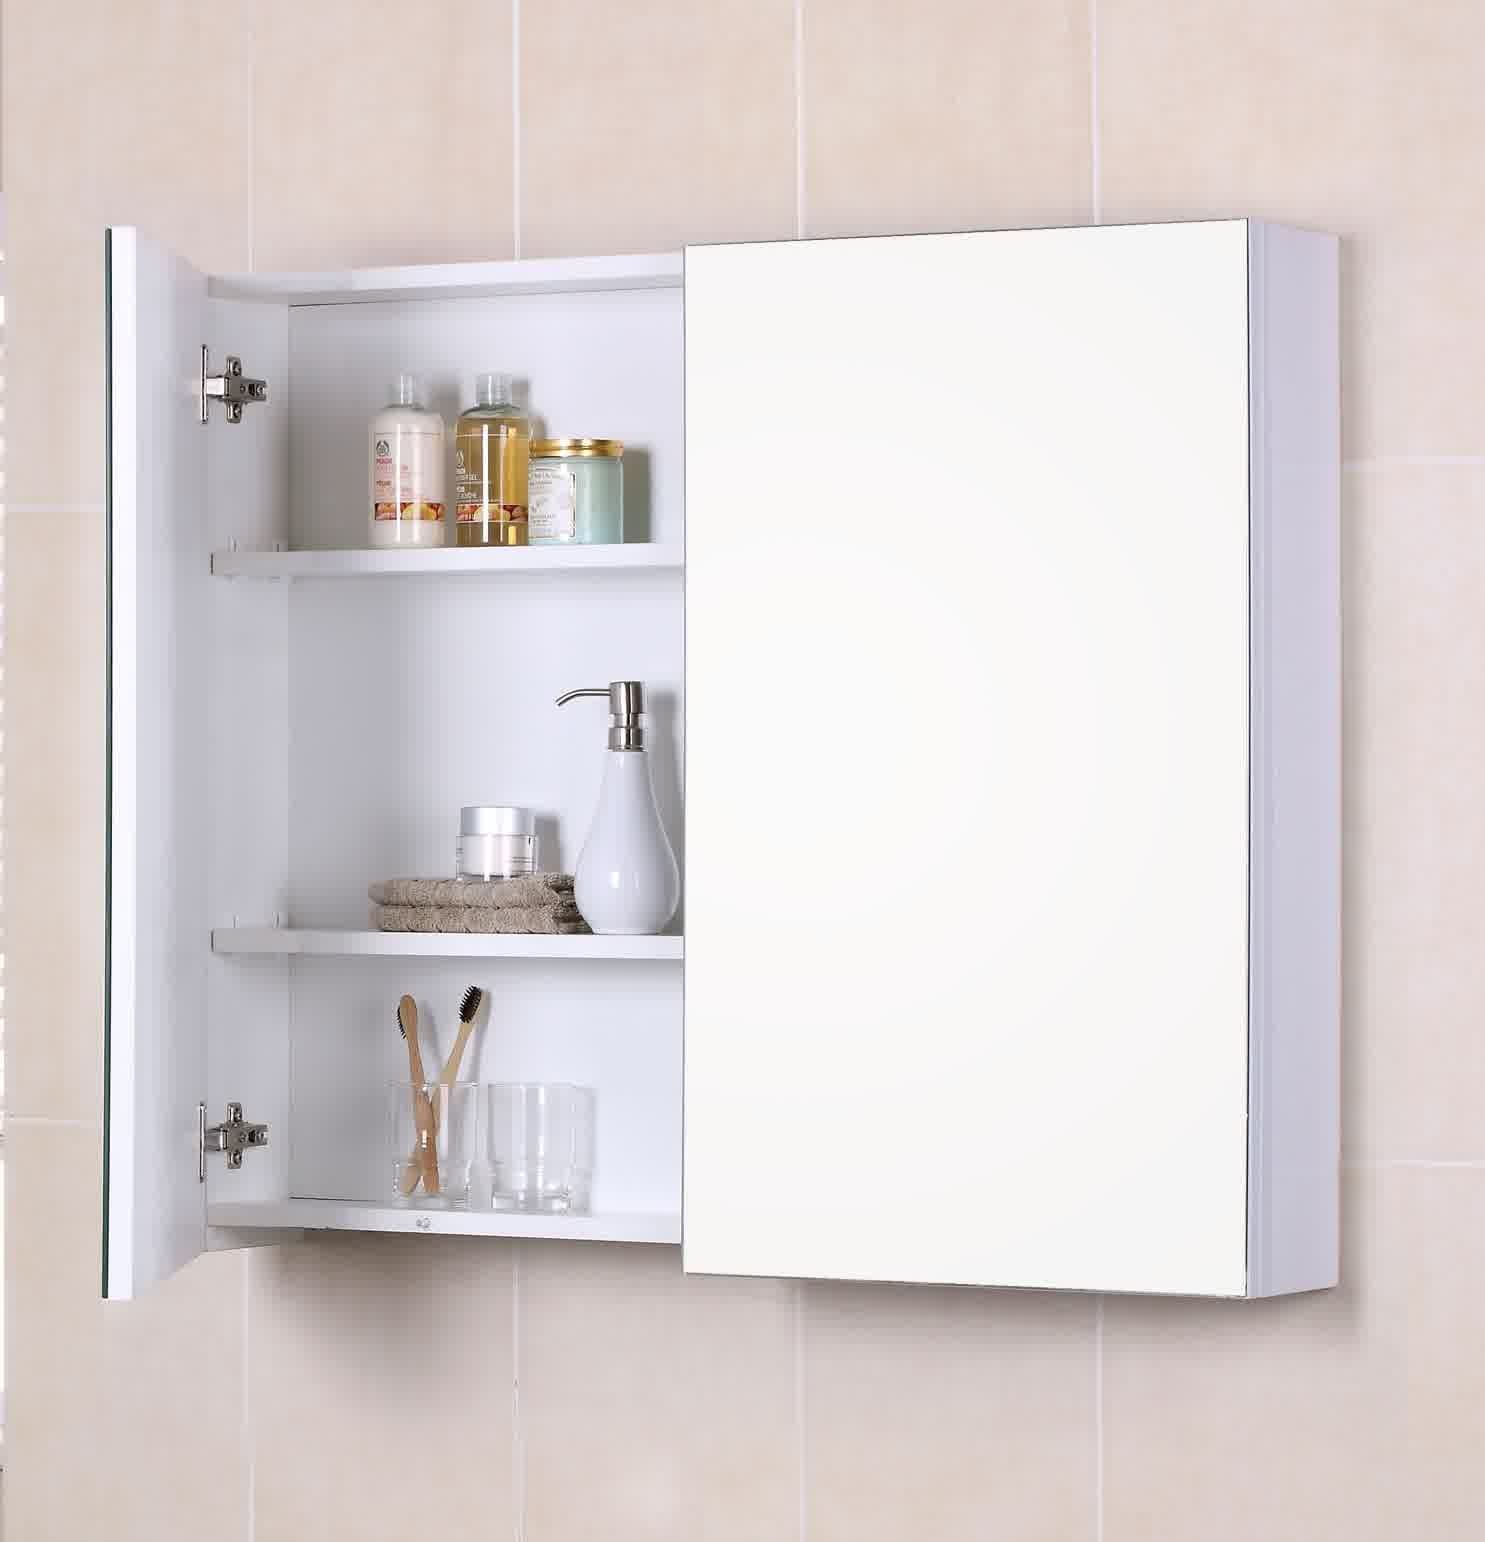 Bathroom Wall Cabinets Without Mirror | http://drrw.us | Pinterest ...